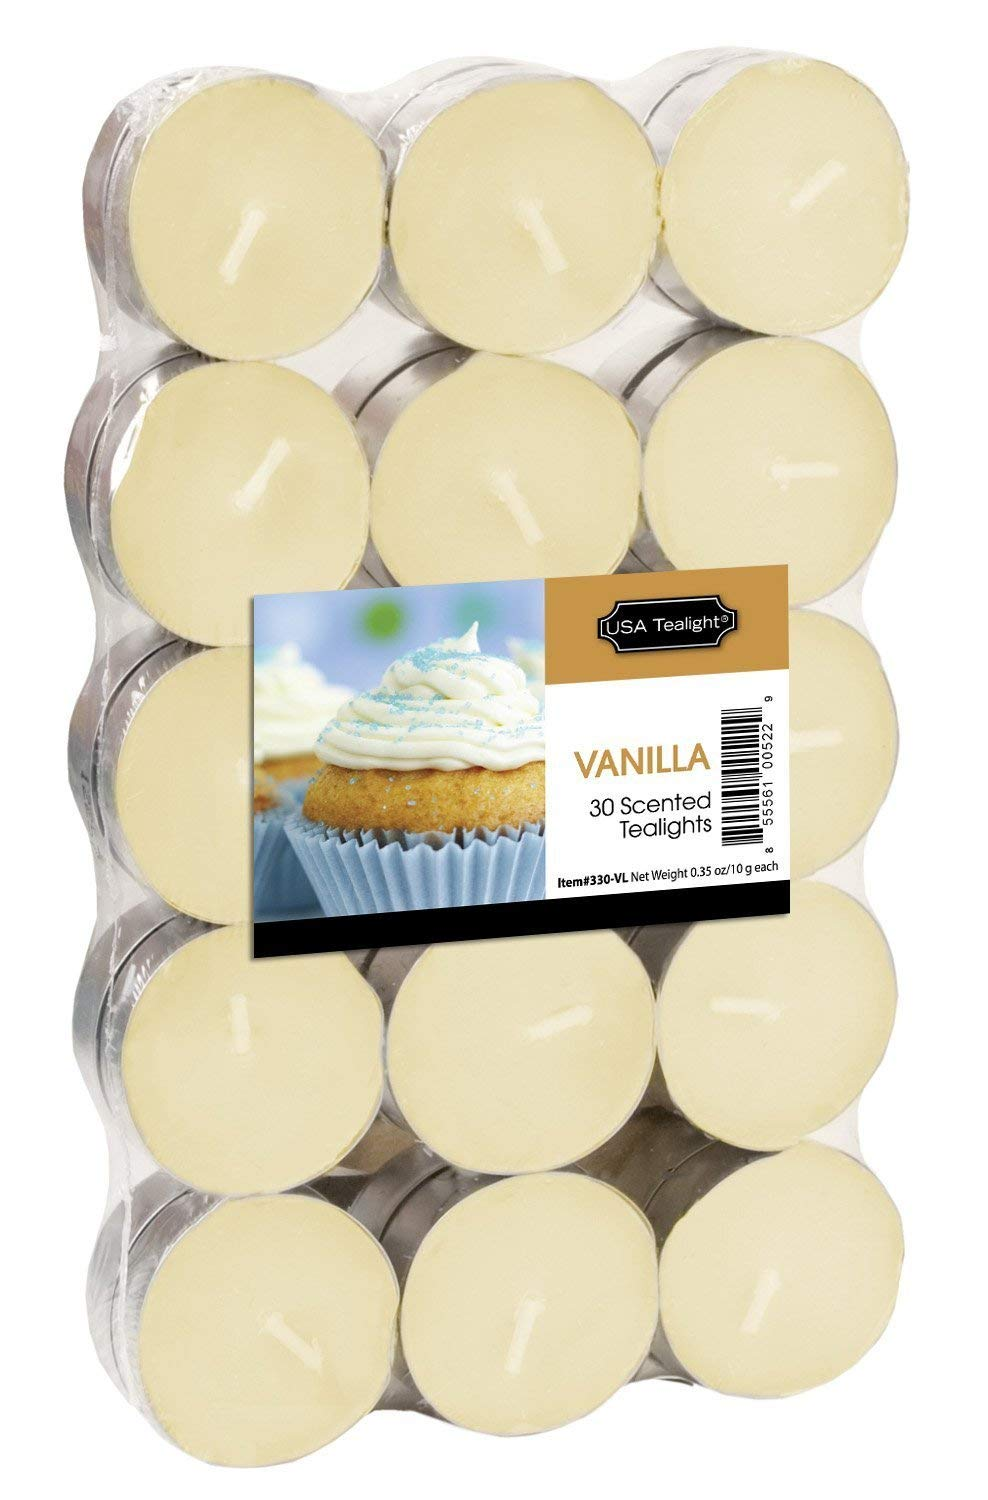 USA Tealight French Vanilla Tealights, 30-Pack - Pack of 4